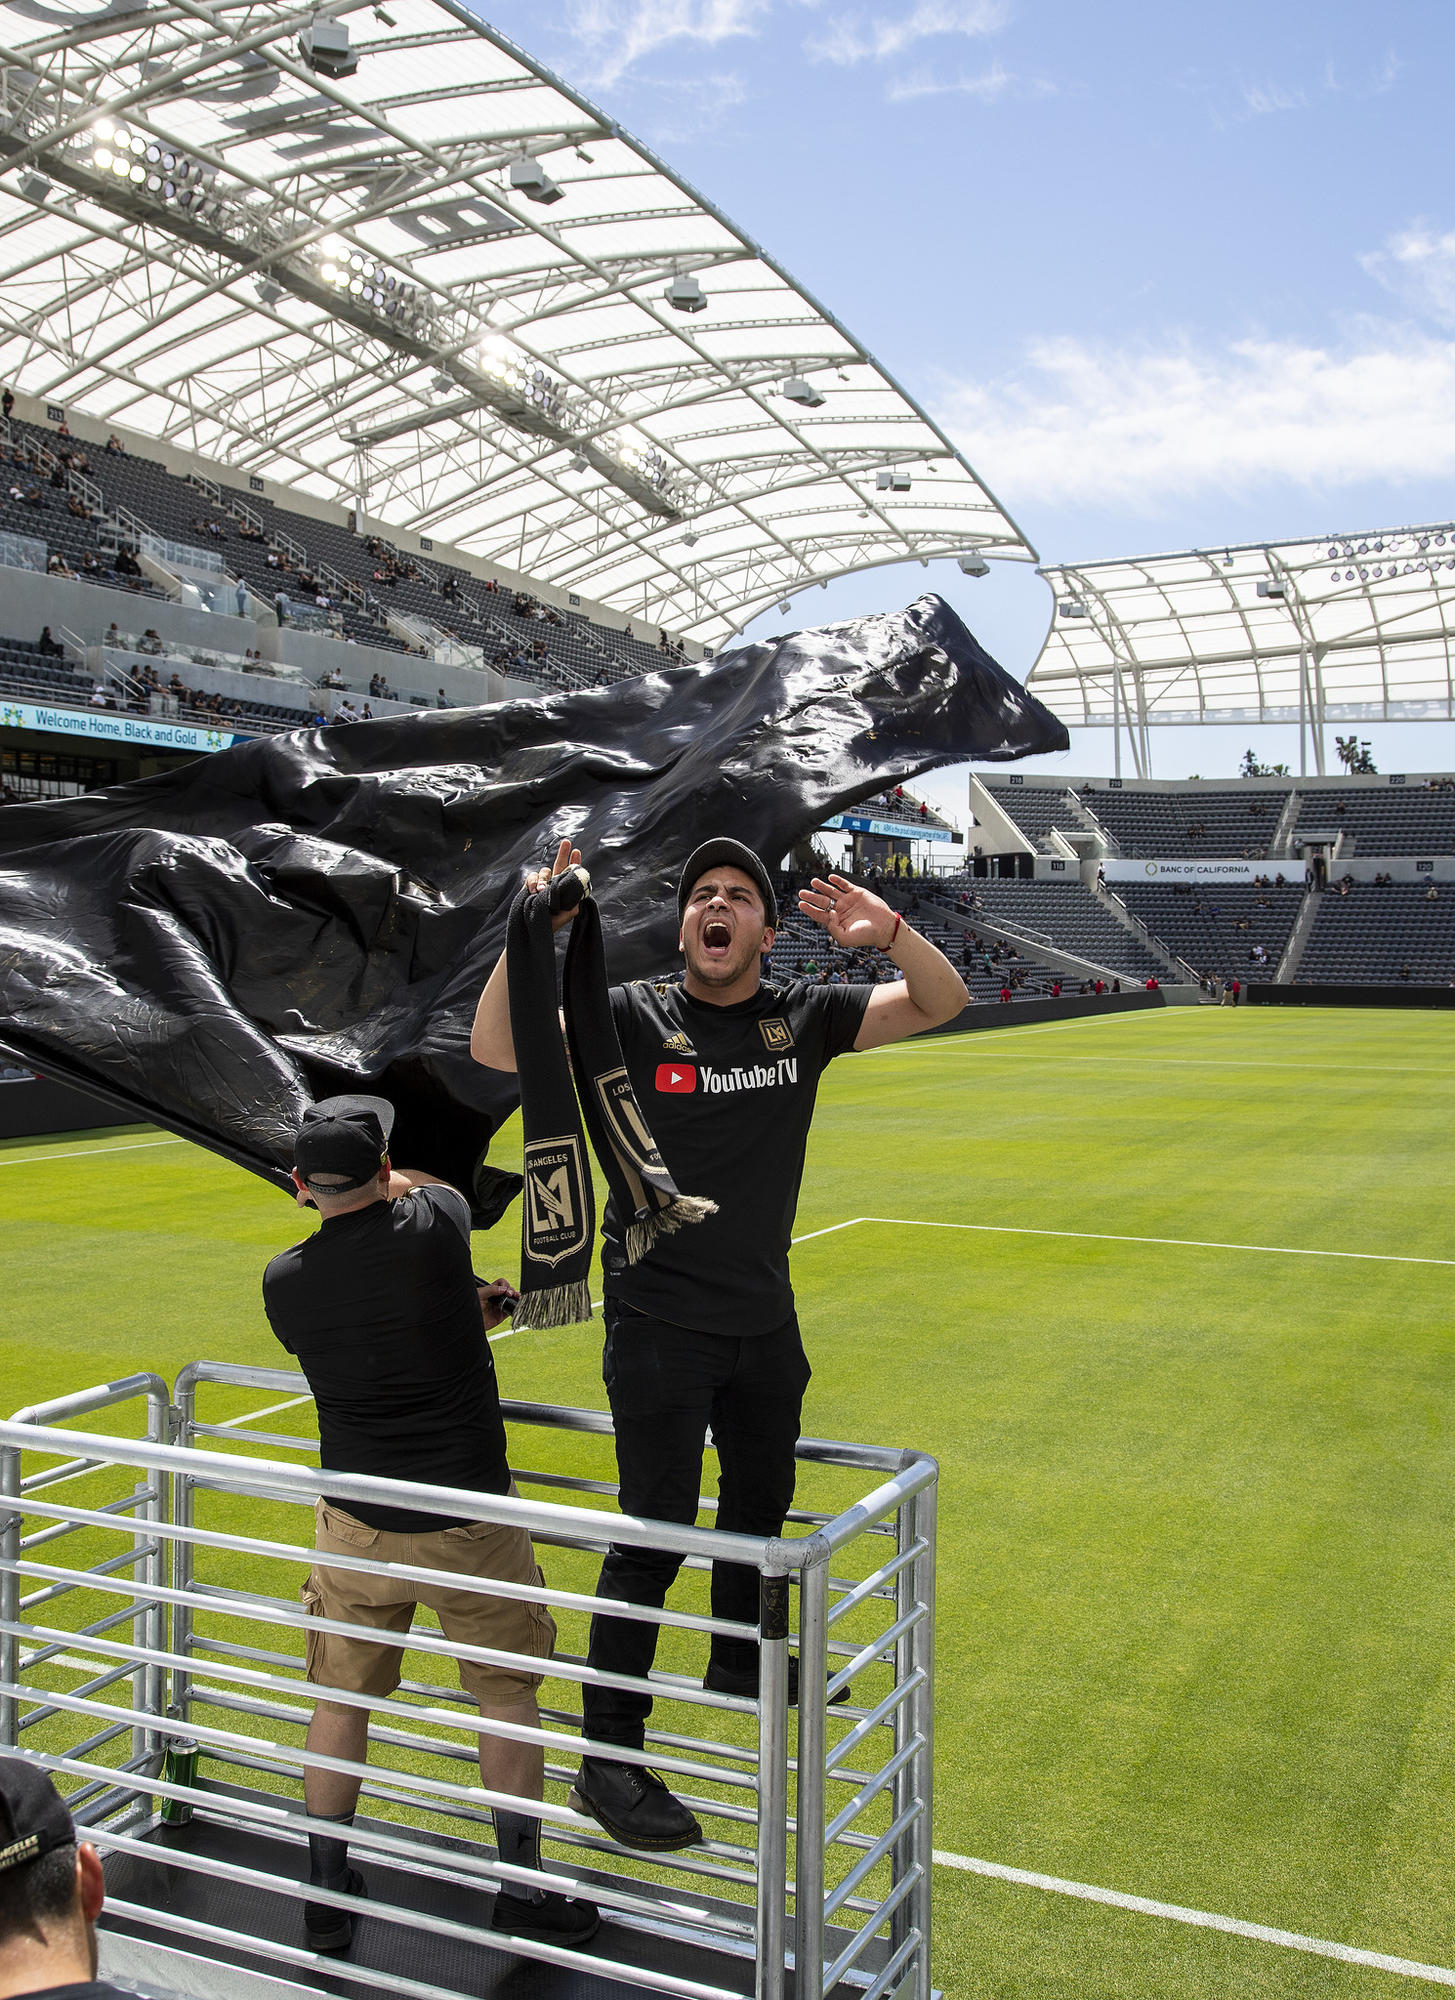 """781ee9acc ... called the Empire Boys while watching an LAFC soccer game on giant  video screens inside the Banc of California Stadium. GIna Ferazzi   Los  Angeles Times. """""""